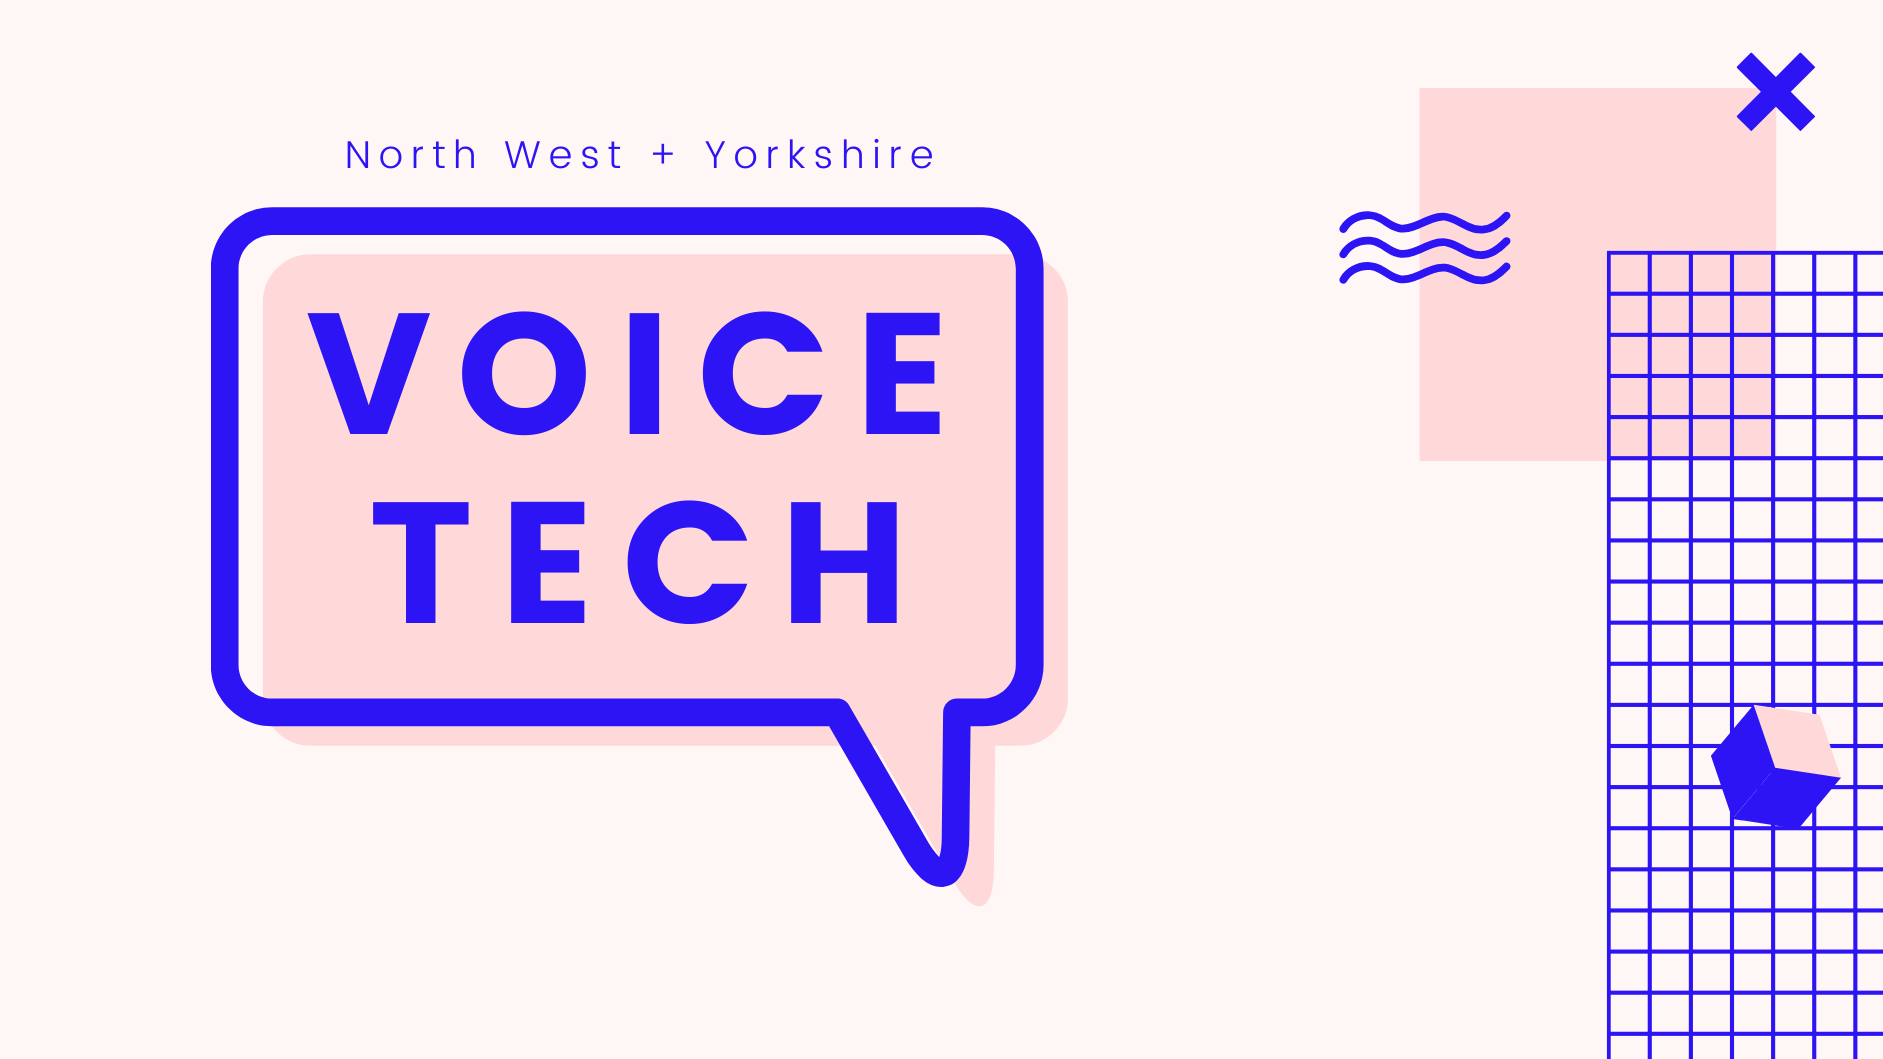 Voice Tech NWY (North West and Yorkshire)